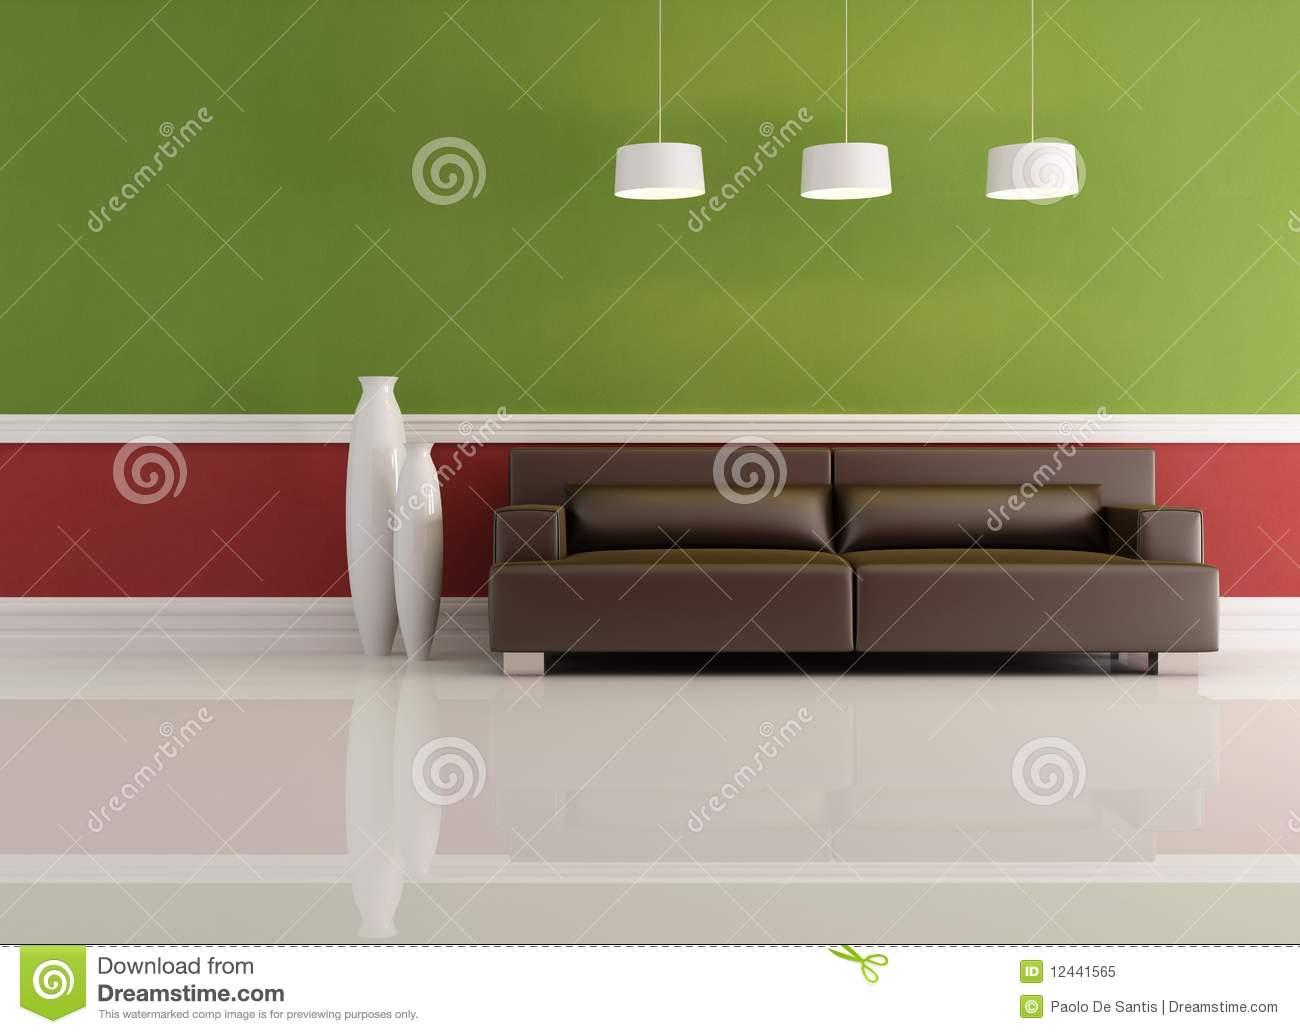 Red and green living room stock illustration  Illustration of home